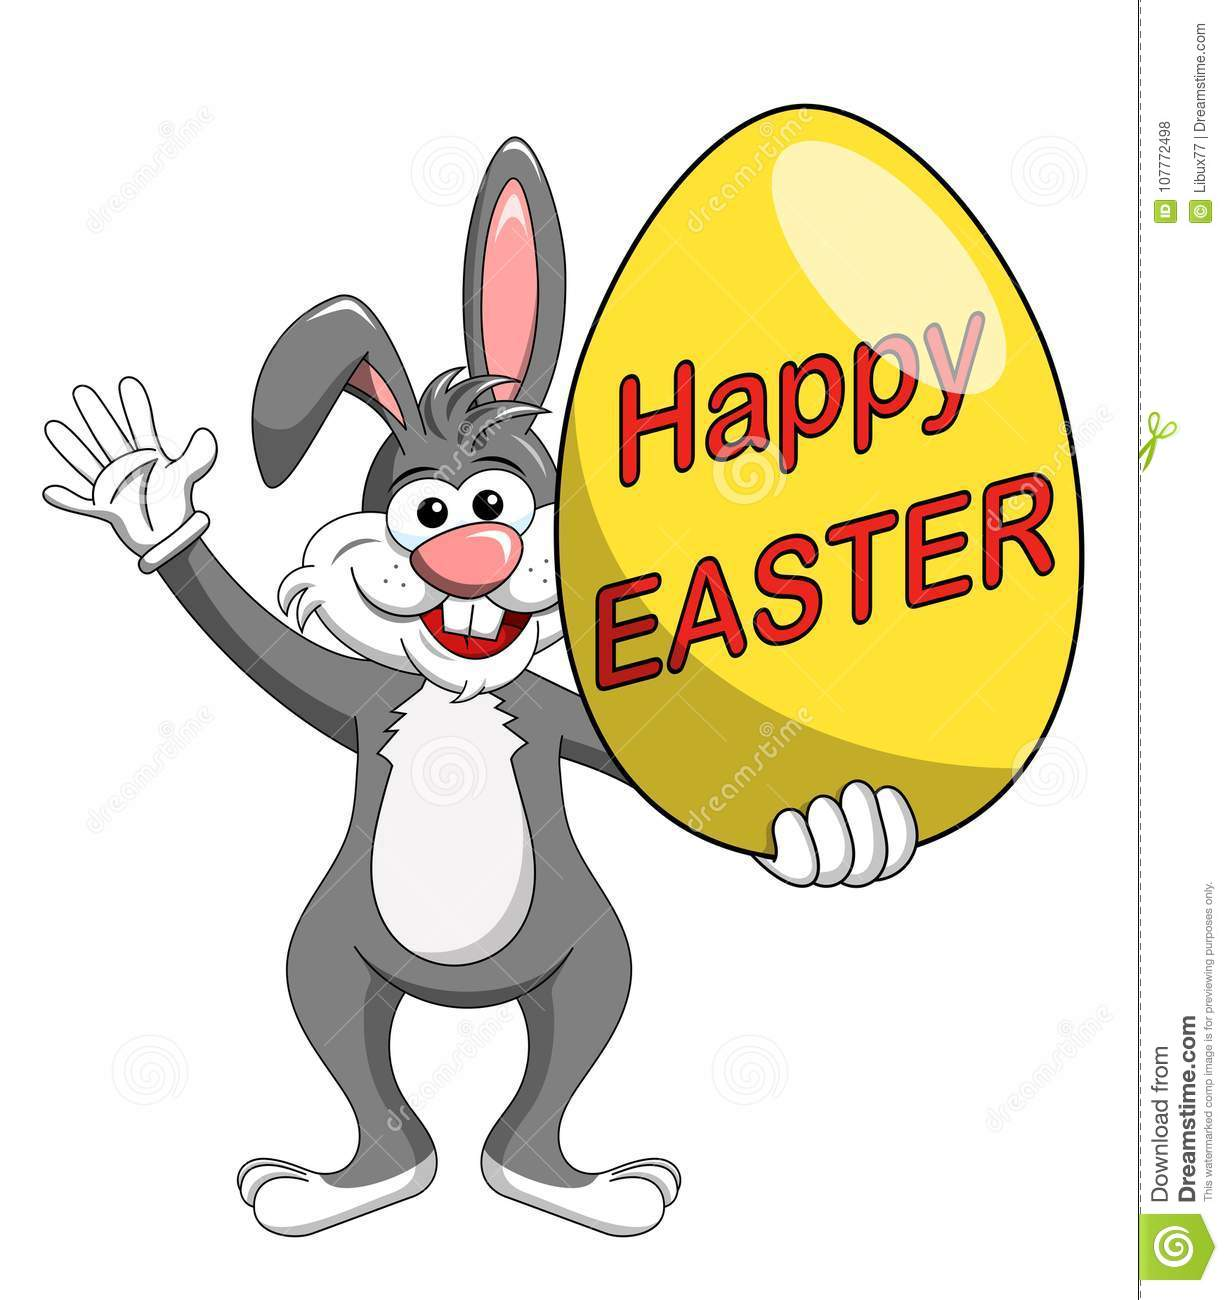 Rabbit or bunny holding happy easter big egg isolated